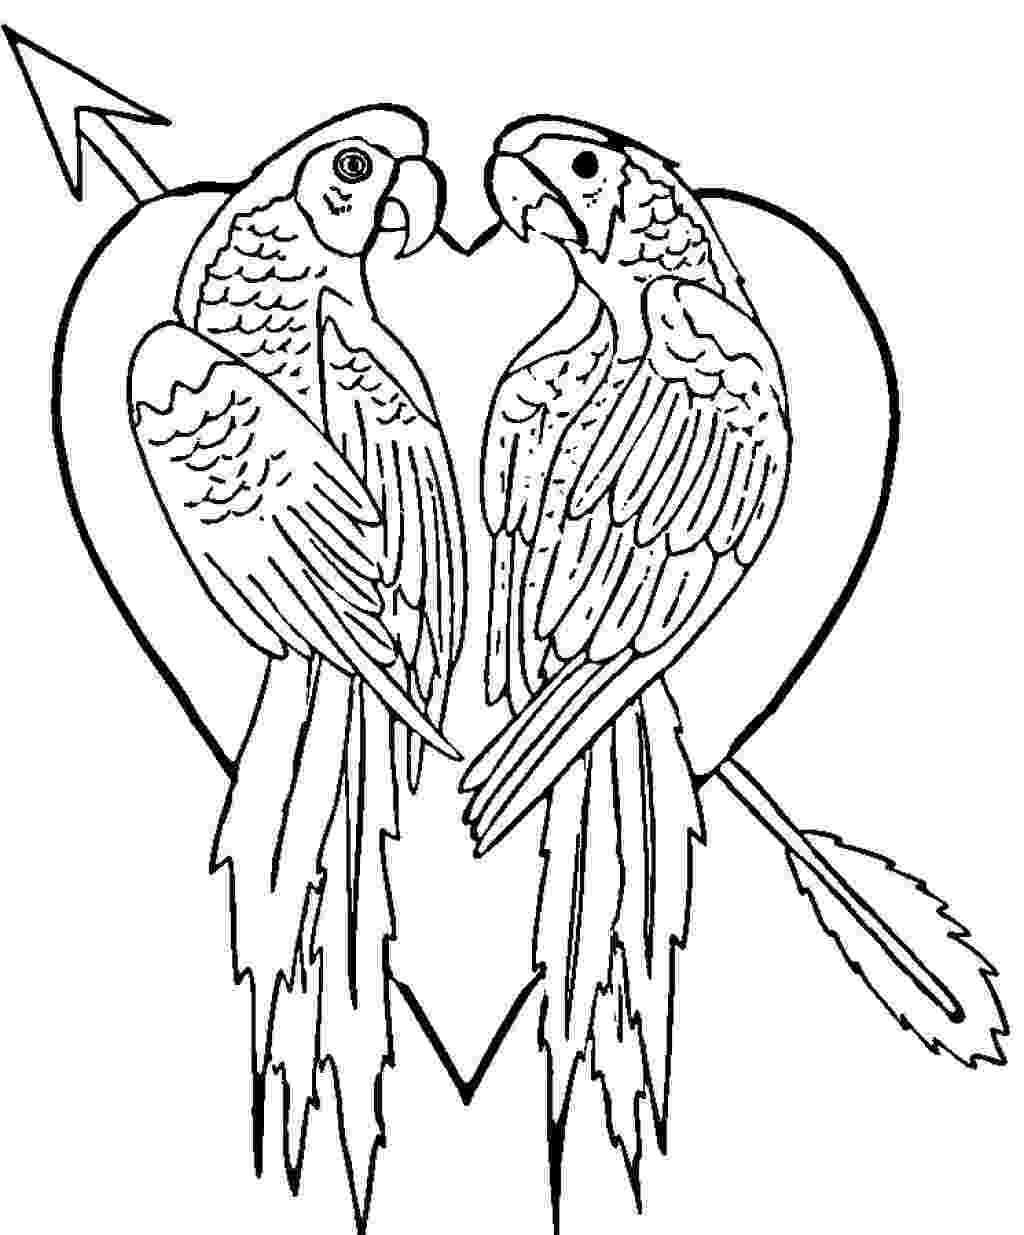 parrot printable parrots coloring pages to download and print for free printable parrot